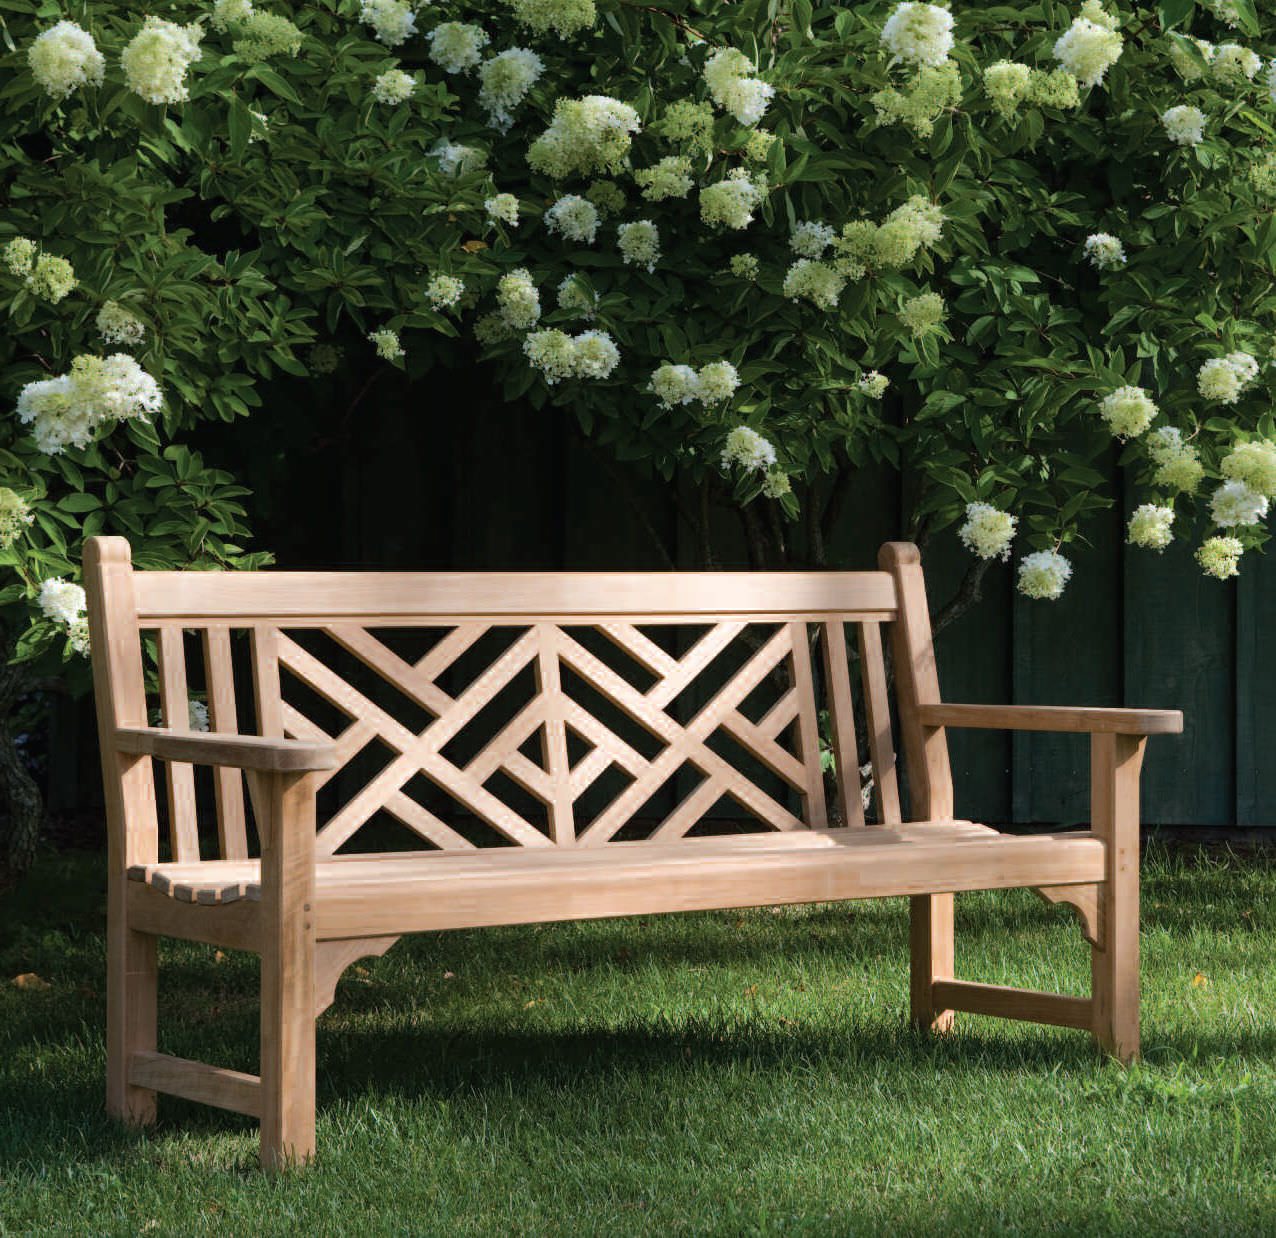 Garden Bench Chippendale Kingsley Bate Traditional Wooden With Backrest